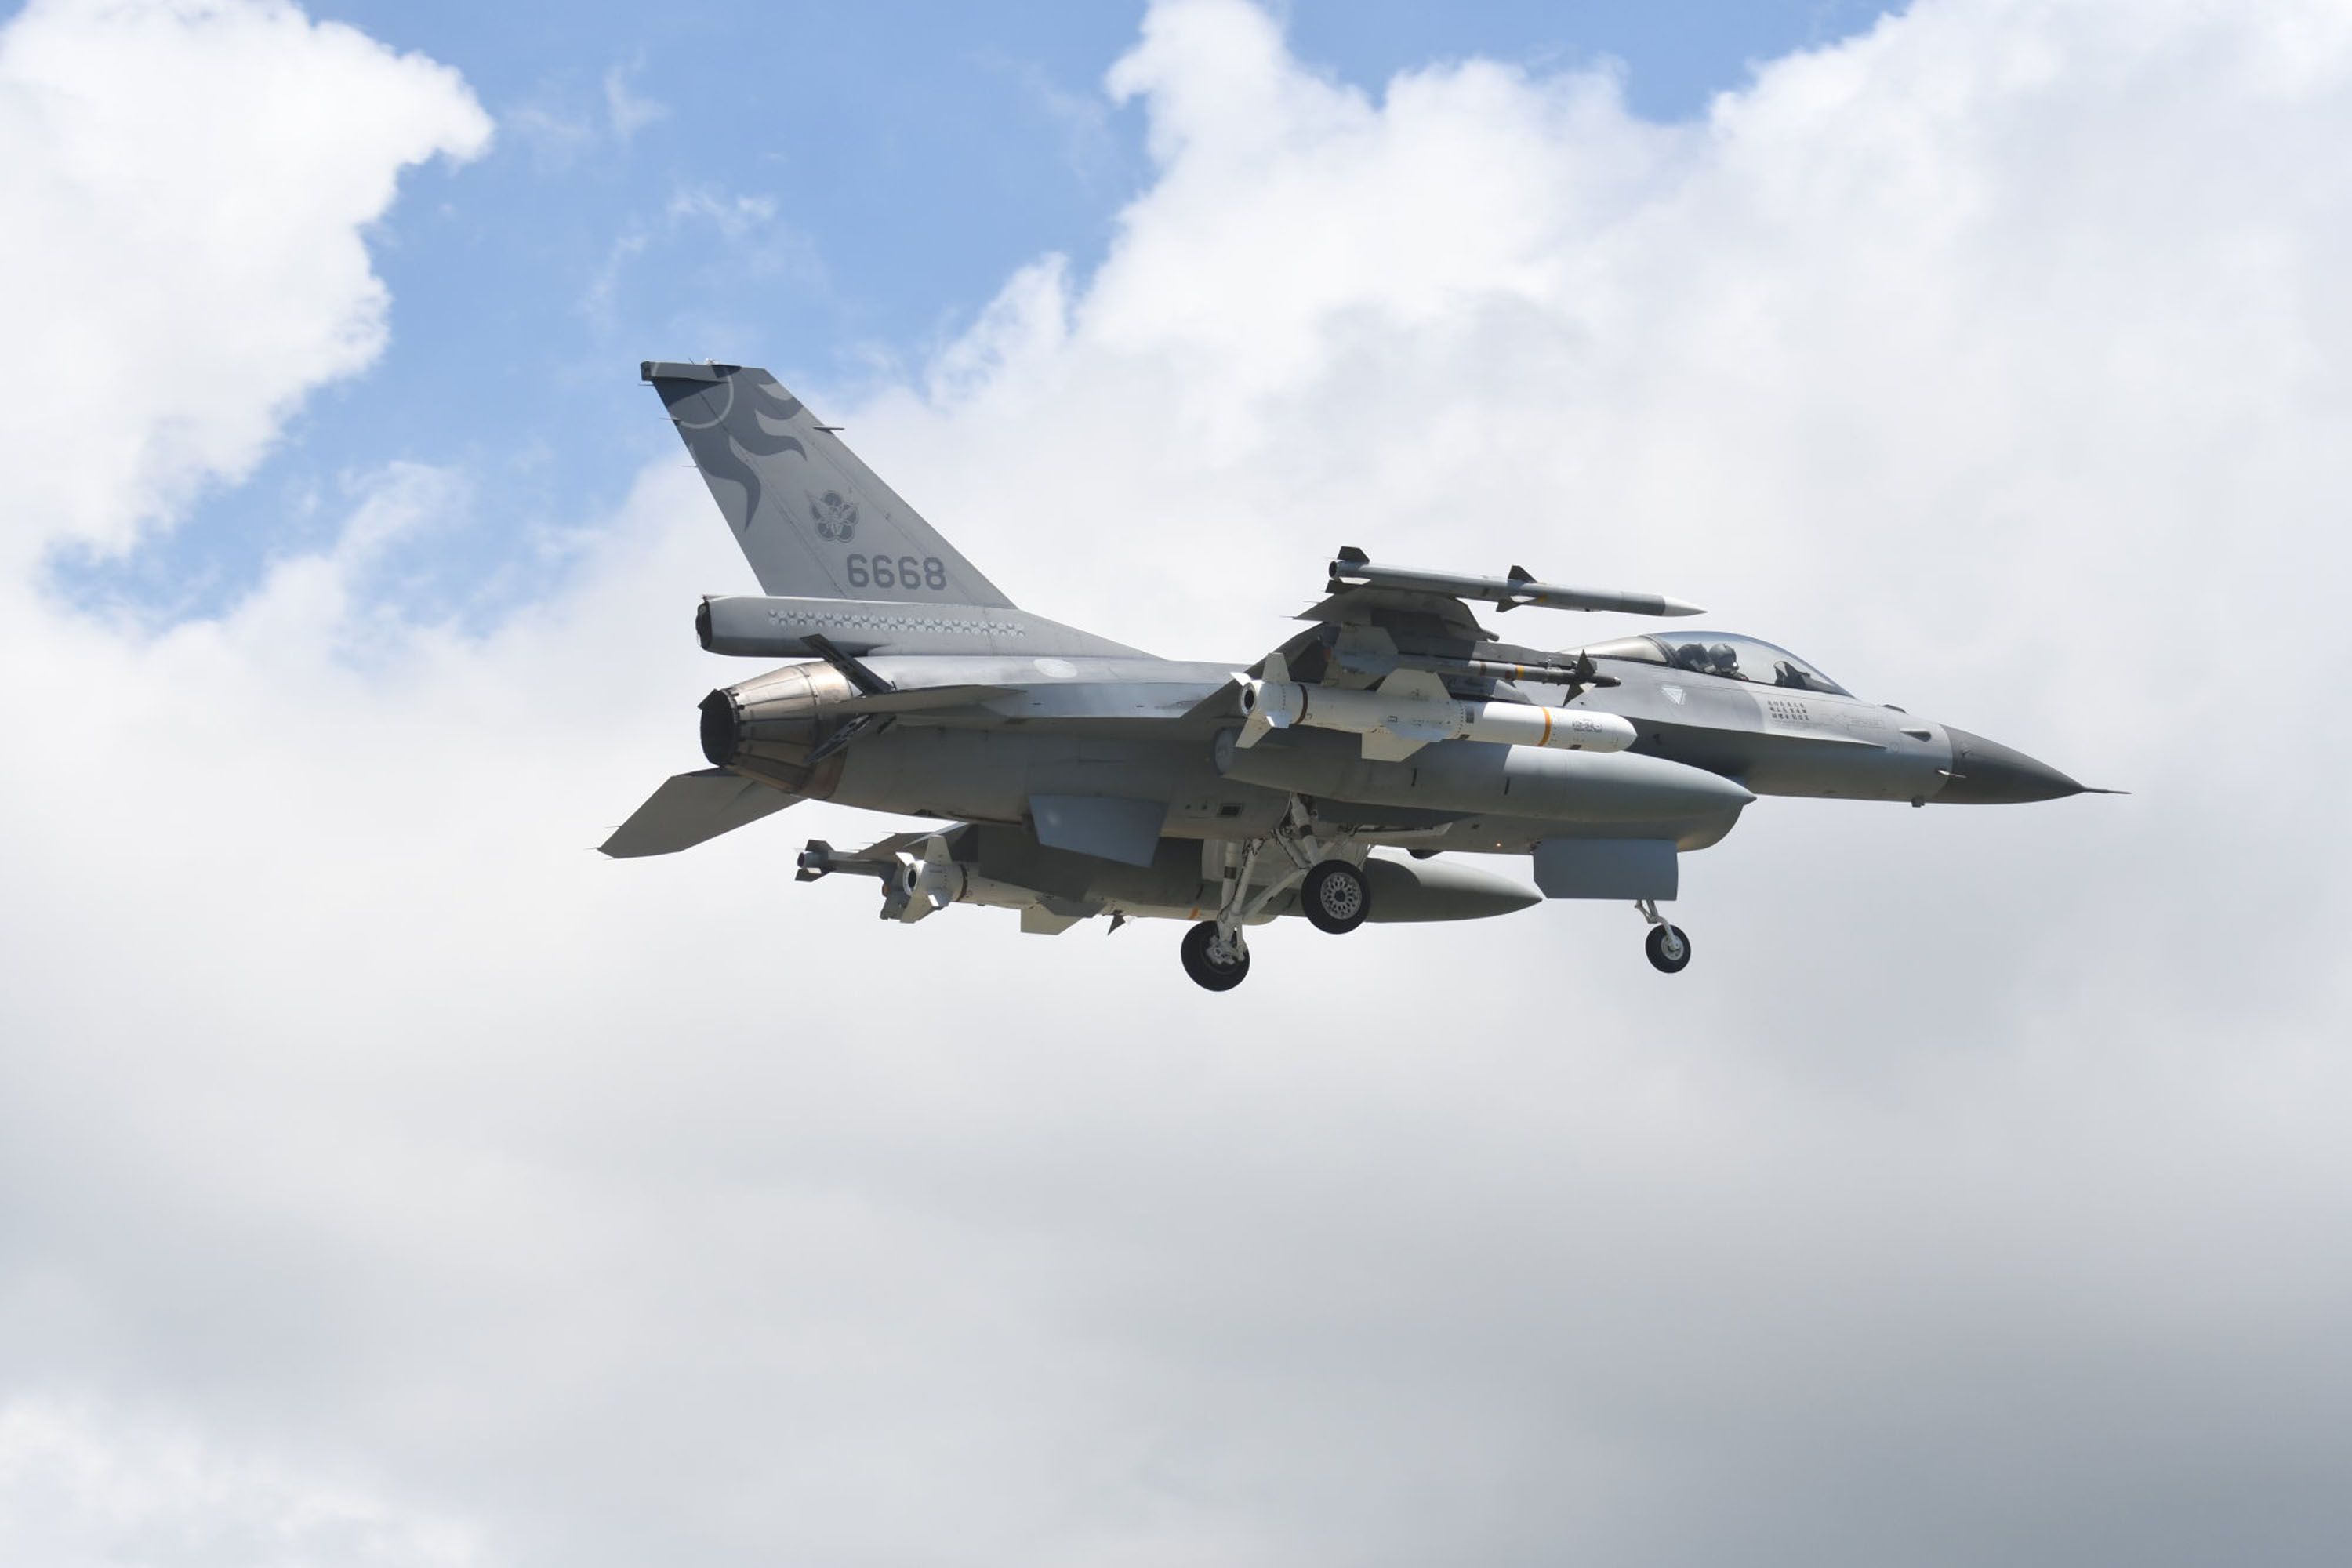 One of Taiwan's F-16s, snapped during the passing of the Liaoning.